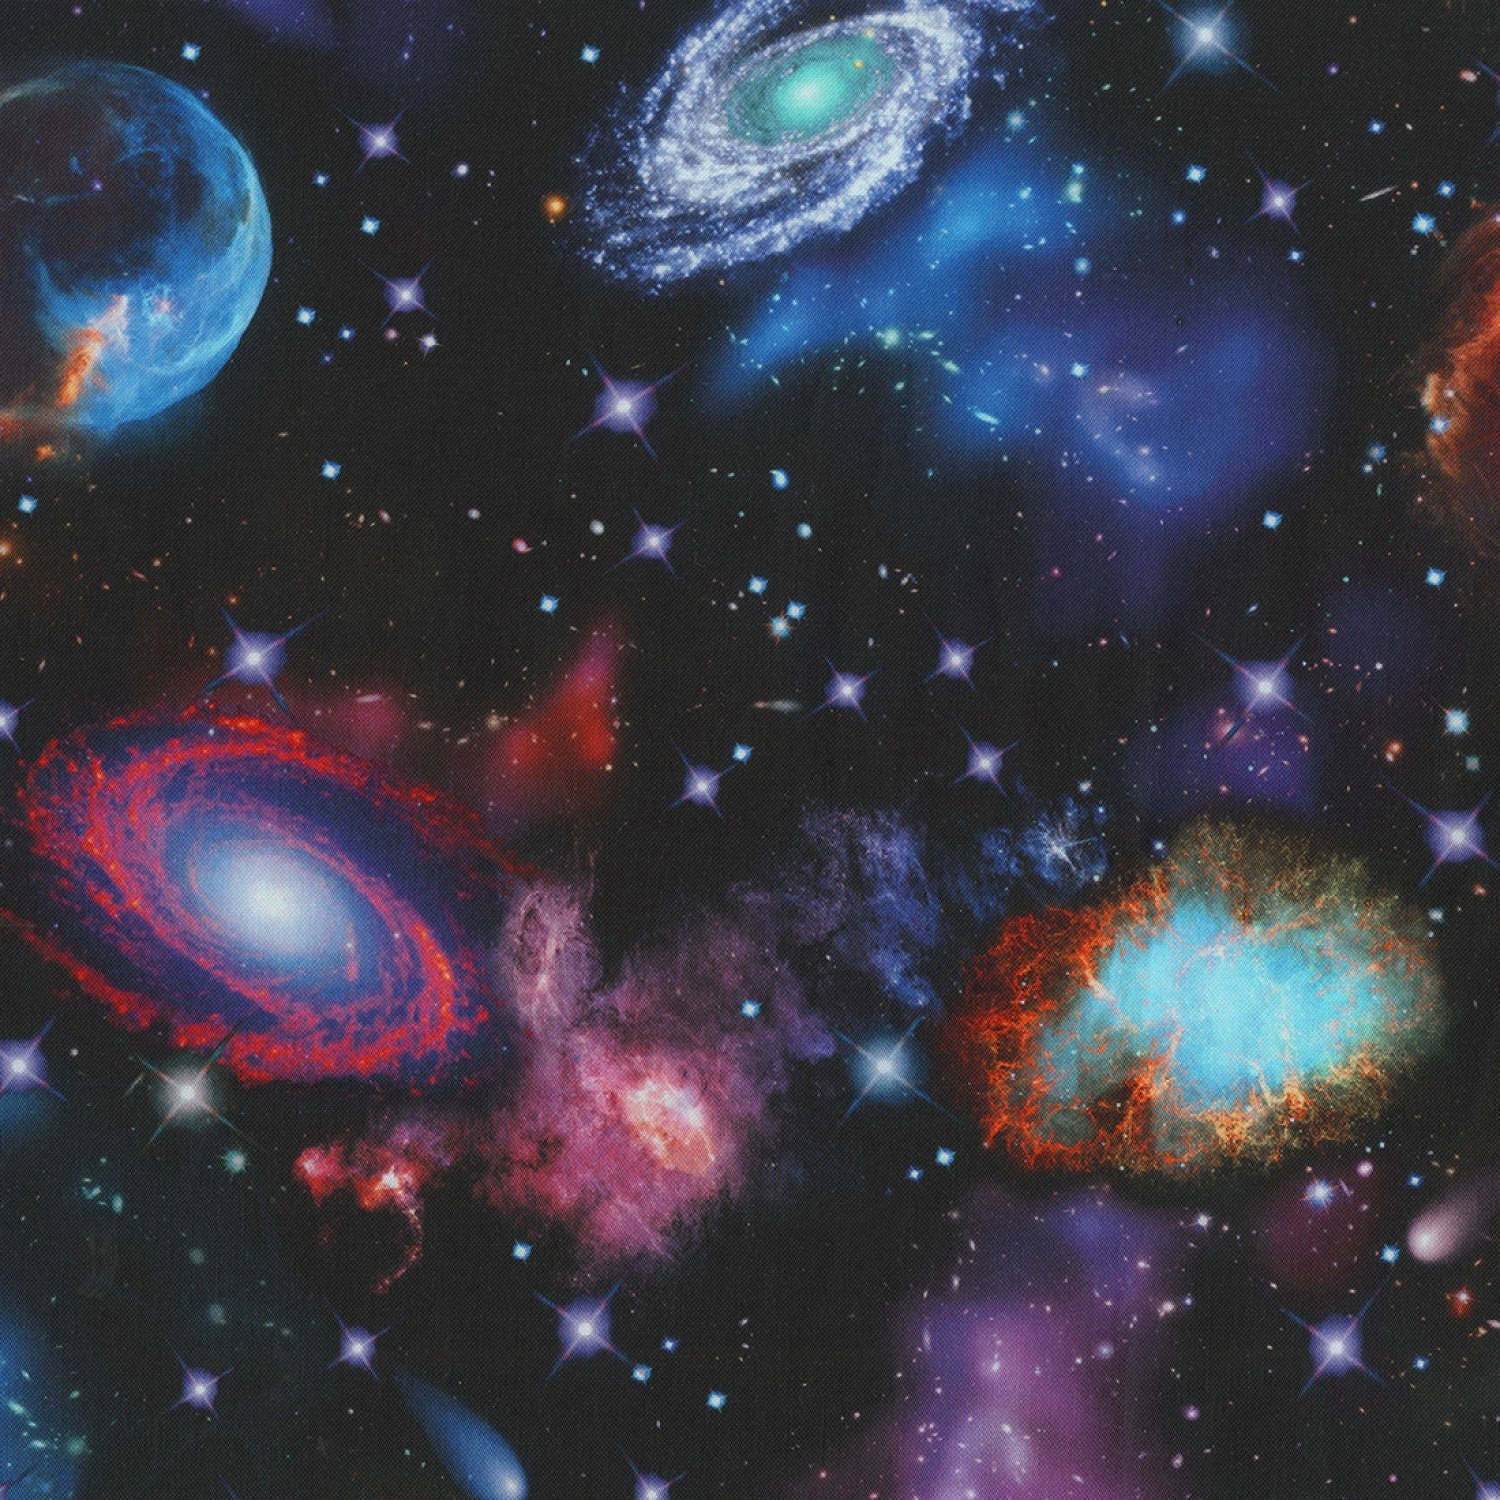 Robert kaufman stargazers nightfall galaxy fabric by for Space themed fabric